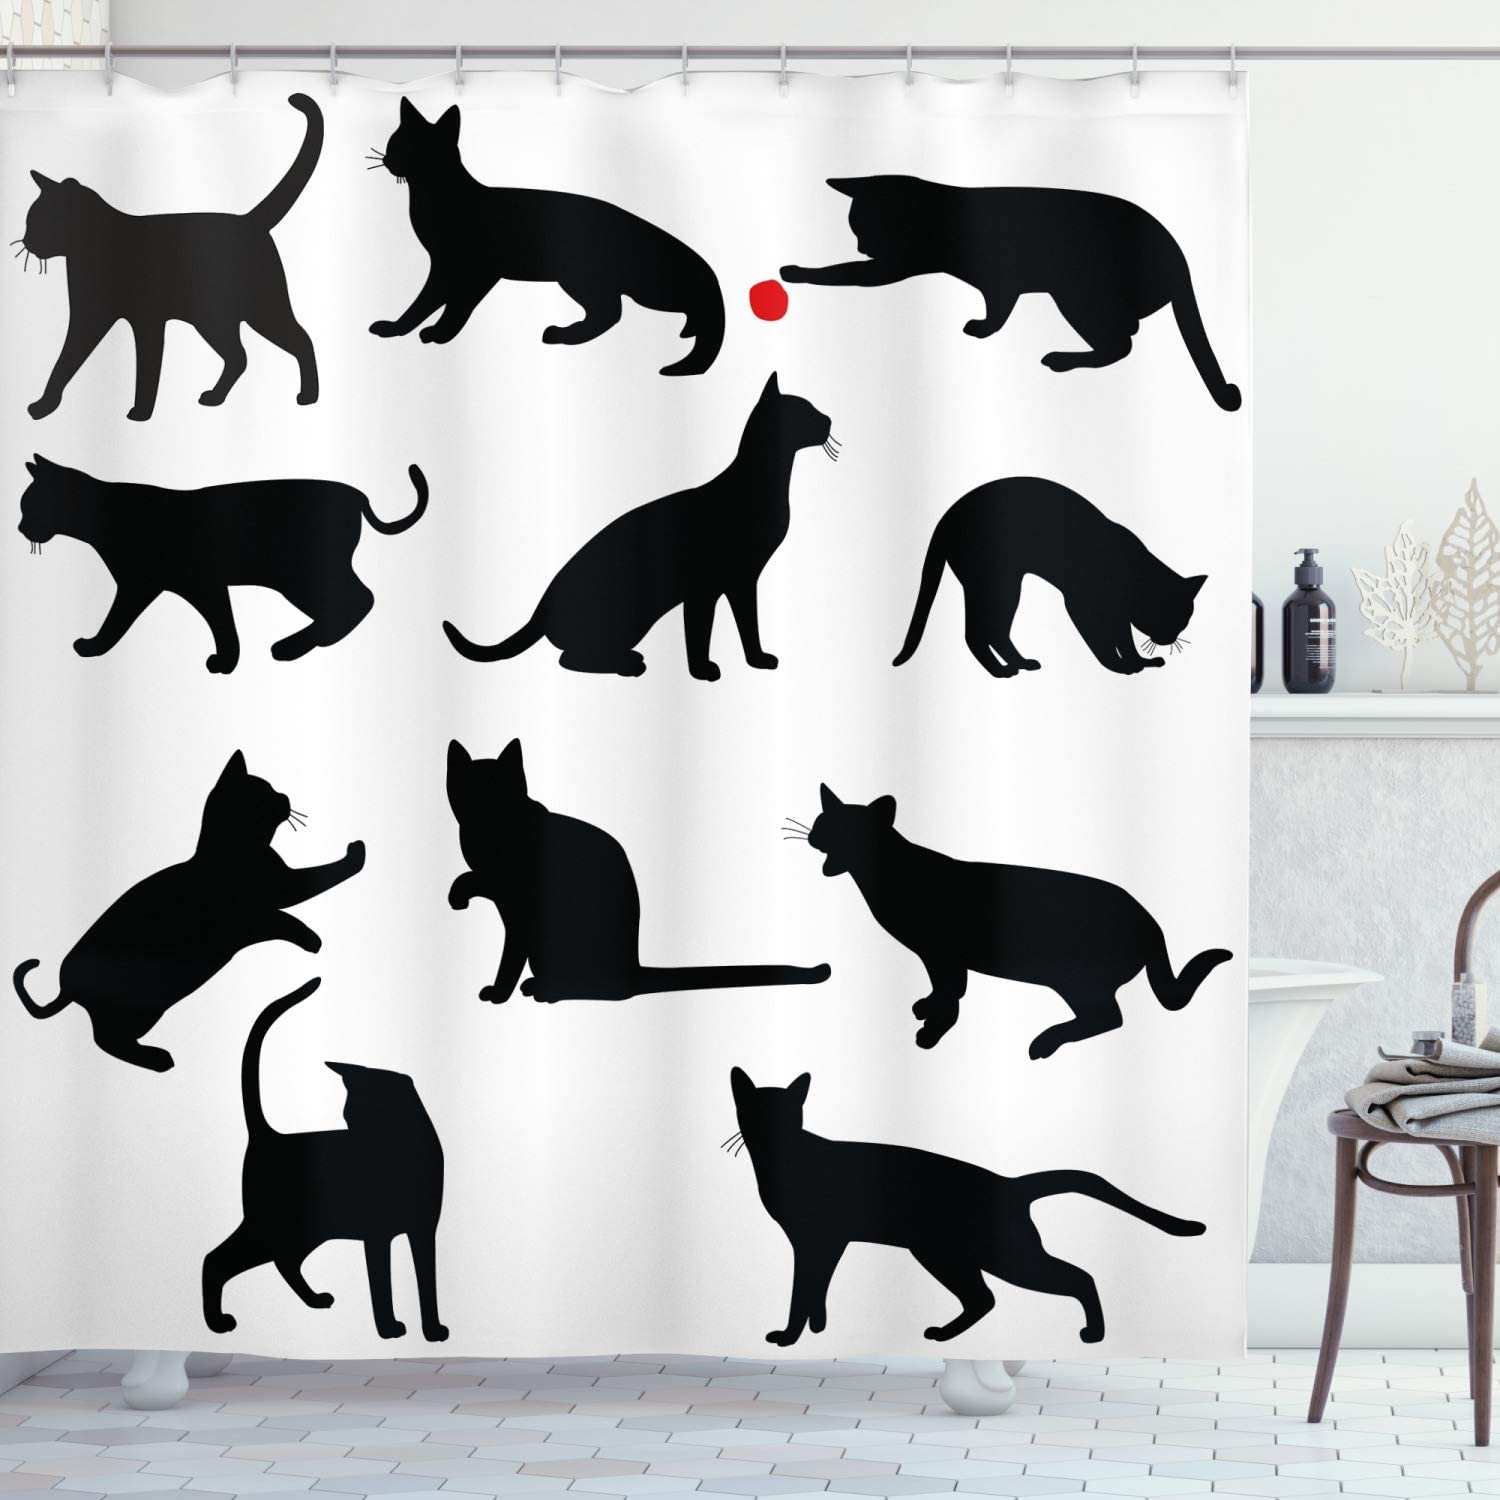 Ambesonne Cat Shower Curtain, Silhouette of Kittens in Various Postures Playing Red Ball Animal Pet Paw Print, Cloth Fabric Bathroom Decor Set with Hooks, 70